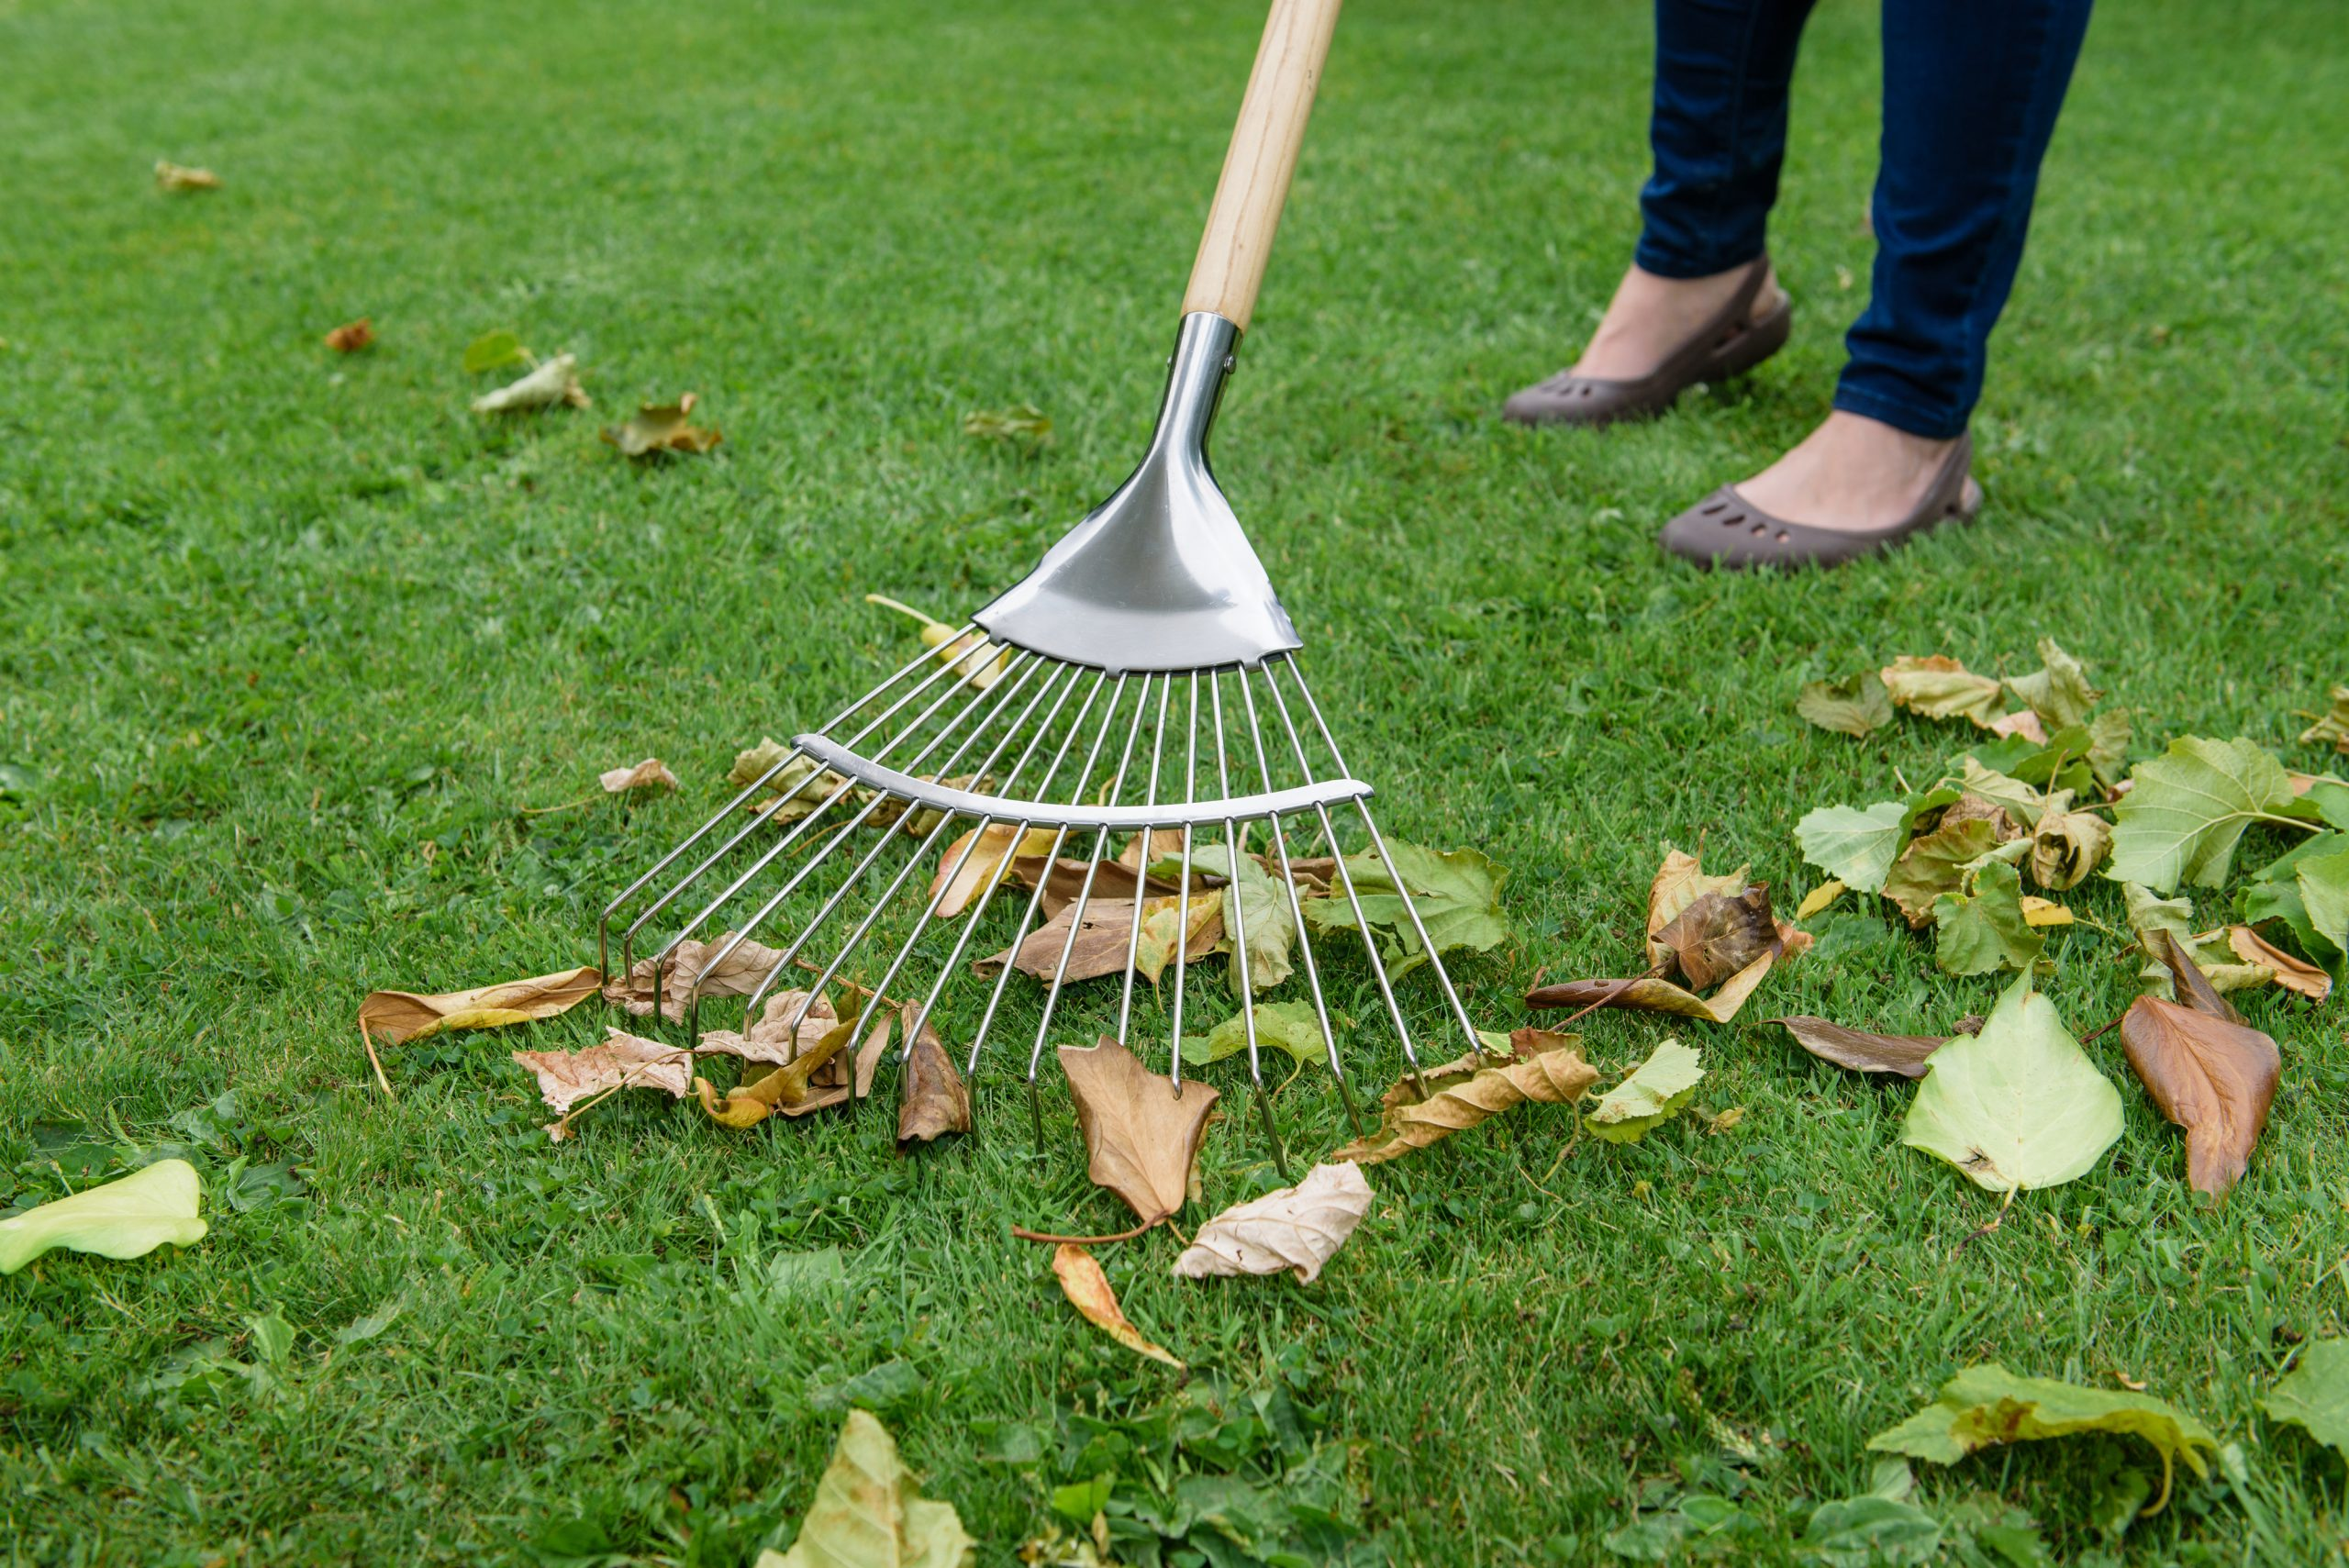 ks lawn and leaf rake